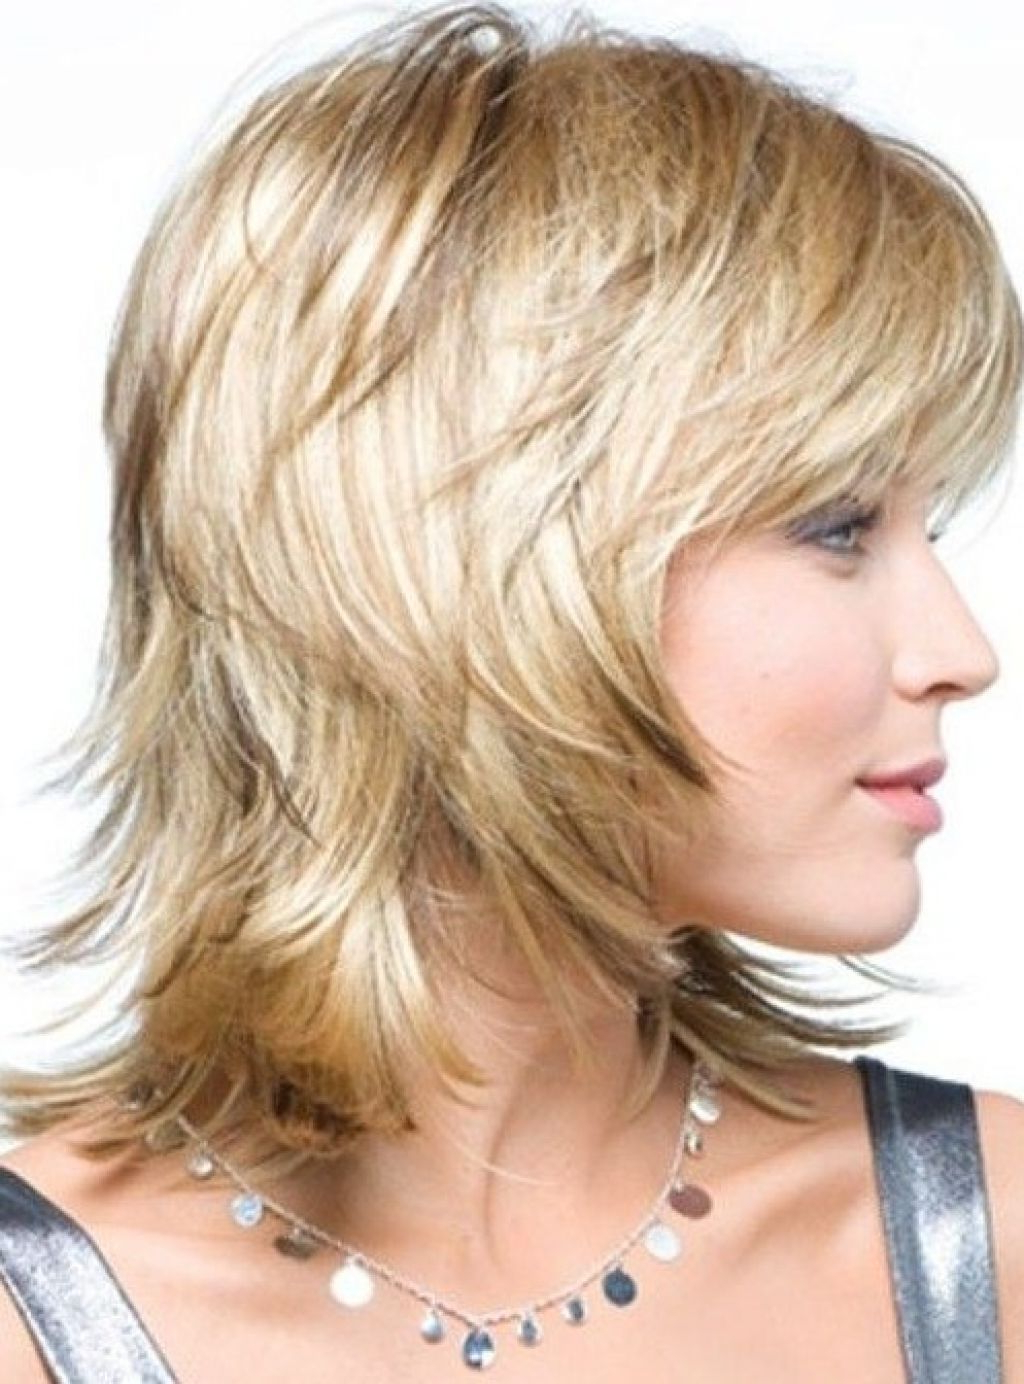 Trendy Medium Hairstyles That Make You Look Younger For Medium Hairstyles To Make You Look Younger (View 20 of 20)